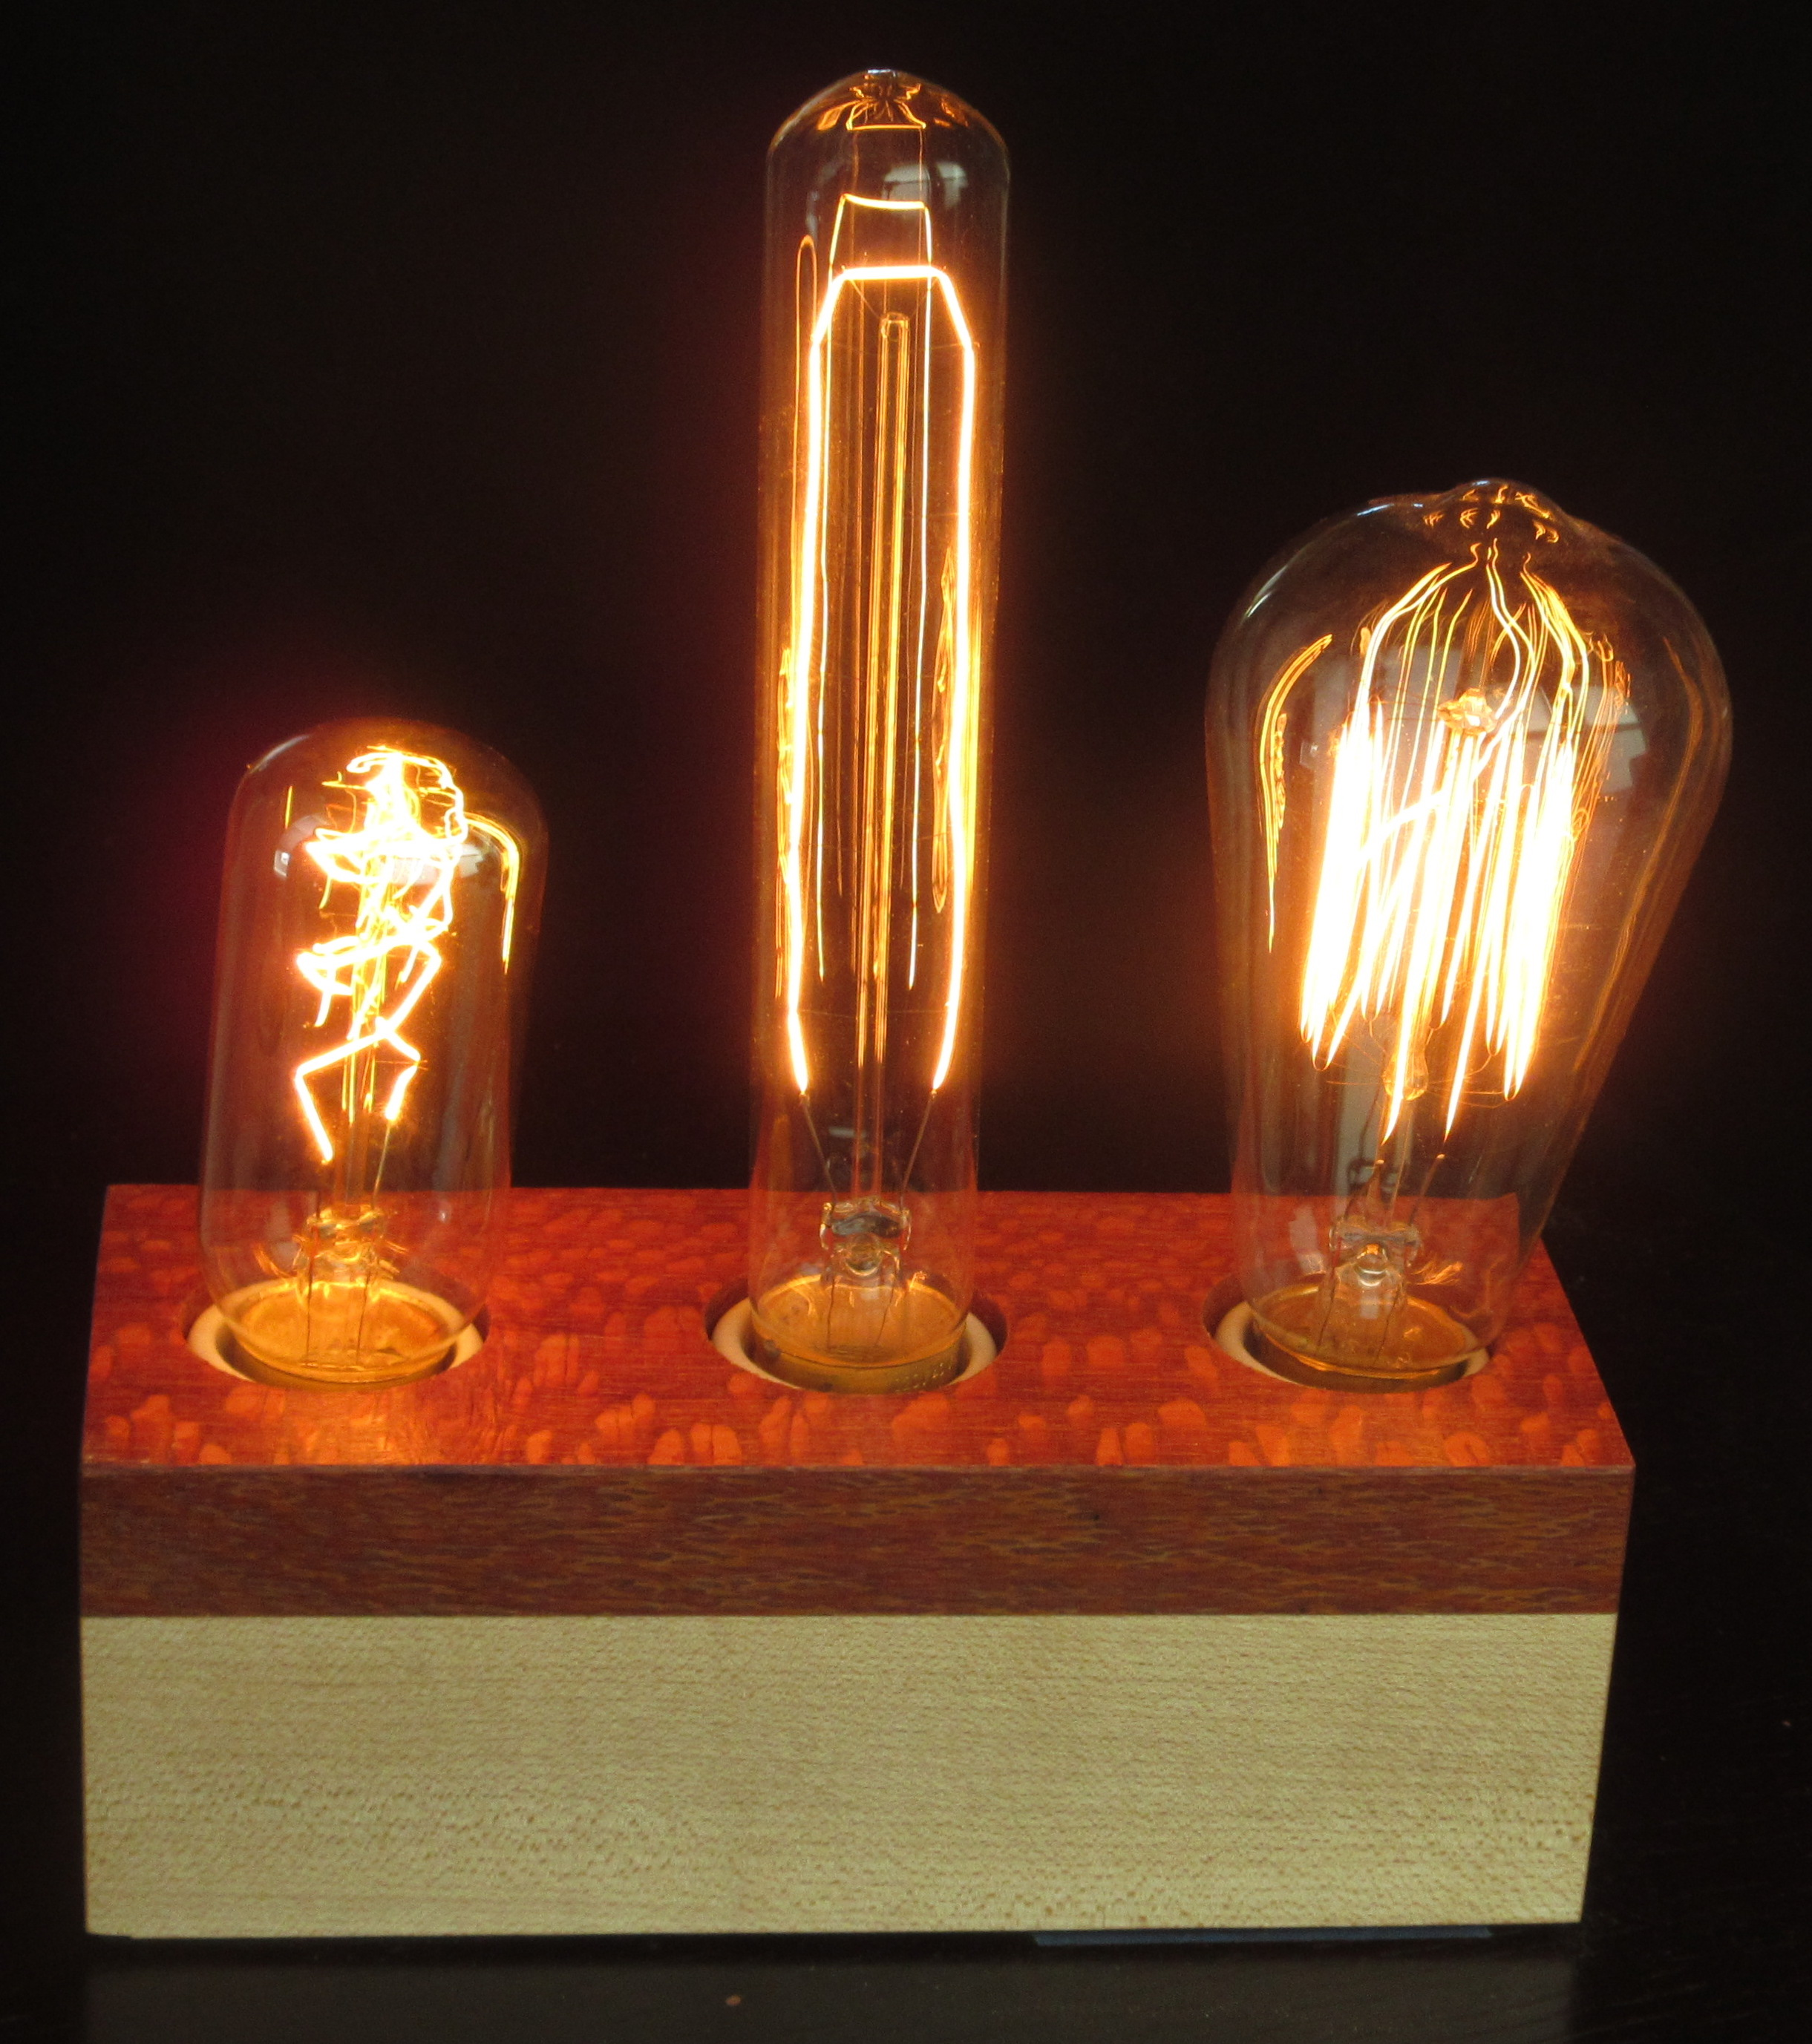 Lacewood and Maple - 3 lamps